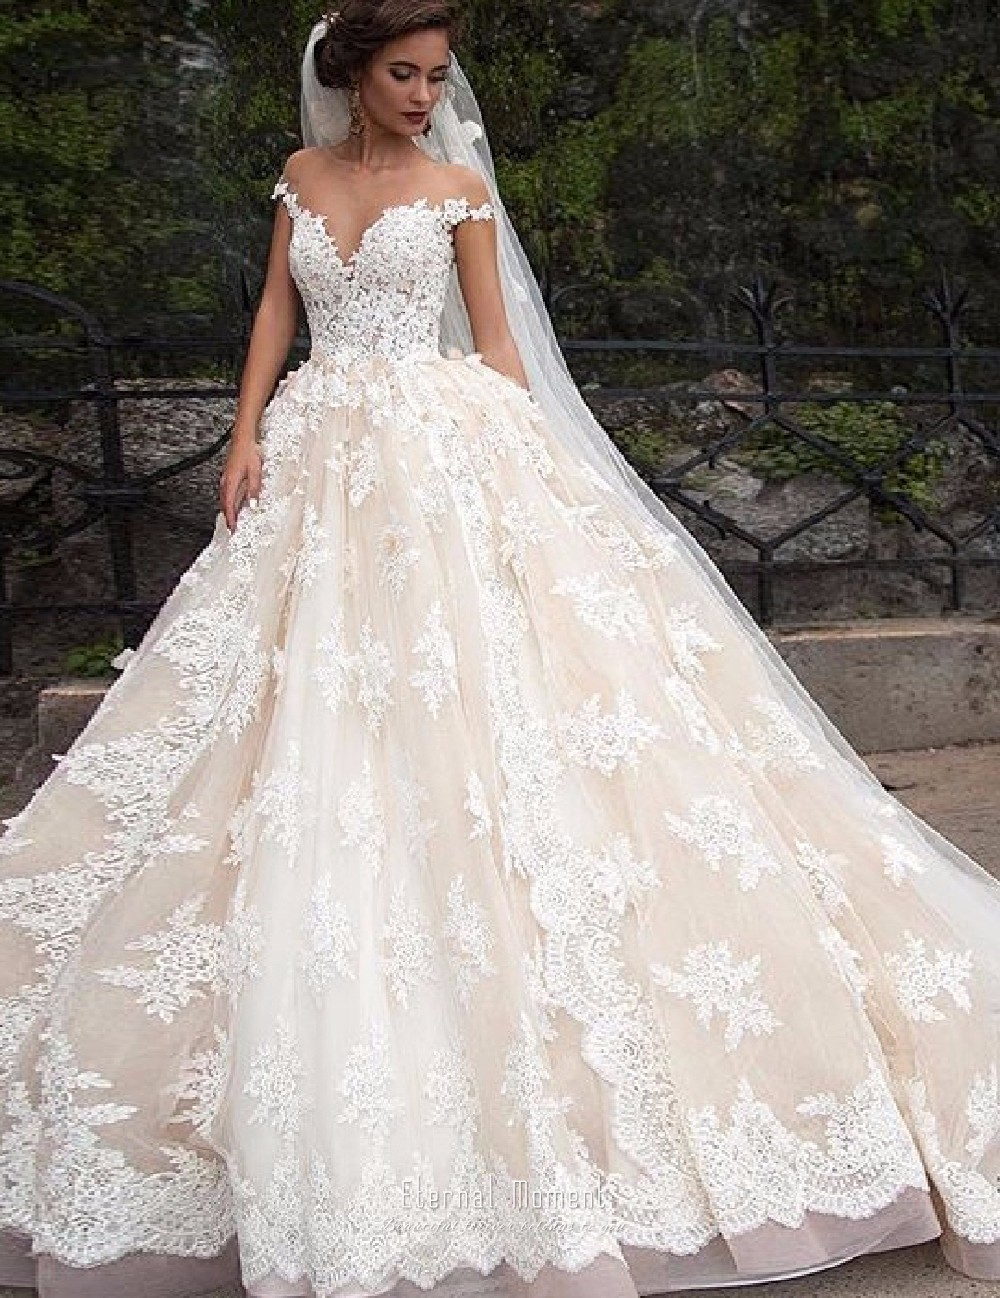 Luxury Lace Ball Gown Wedding Dress 2017 Off Shoulder Princess ...